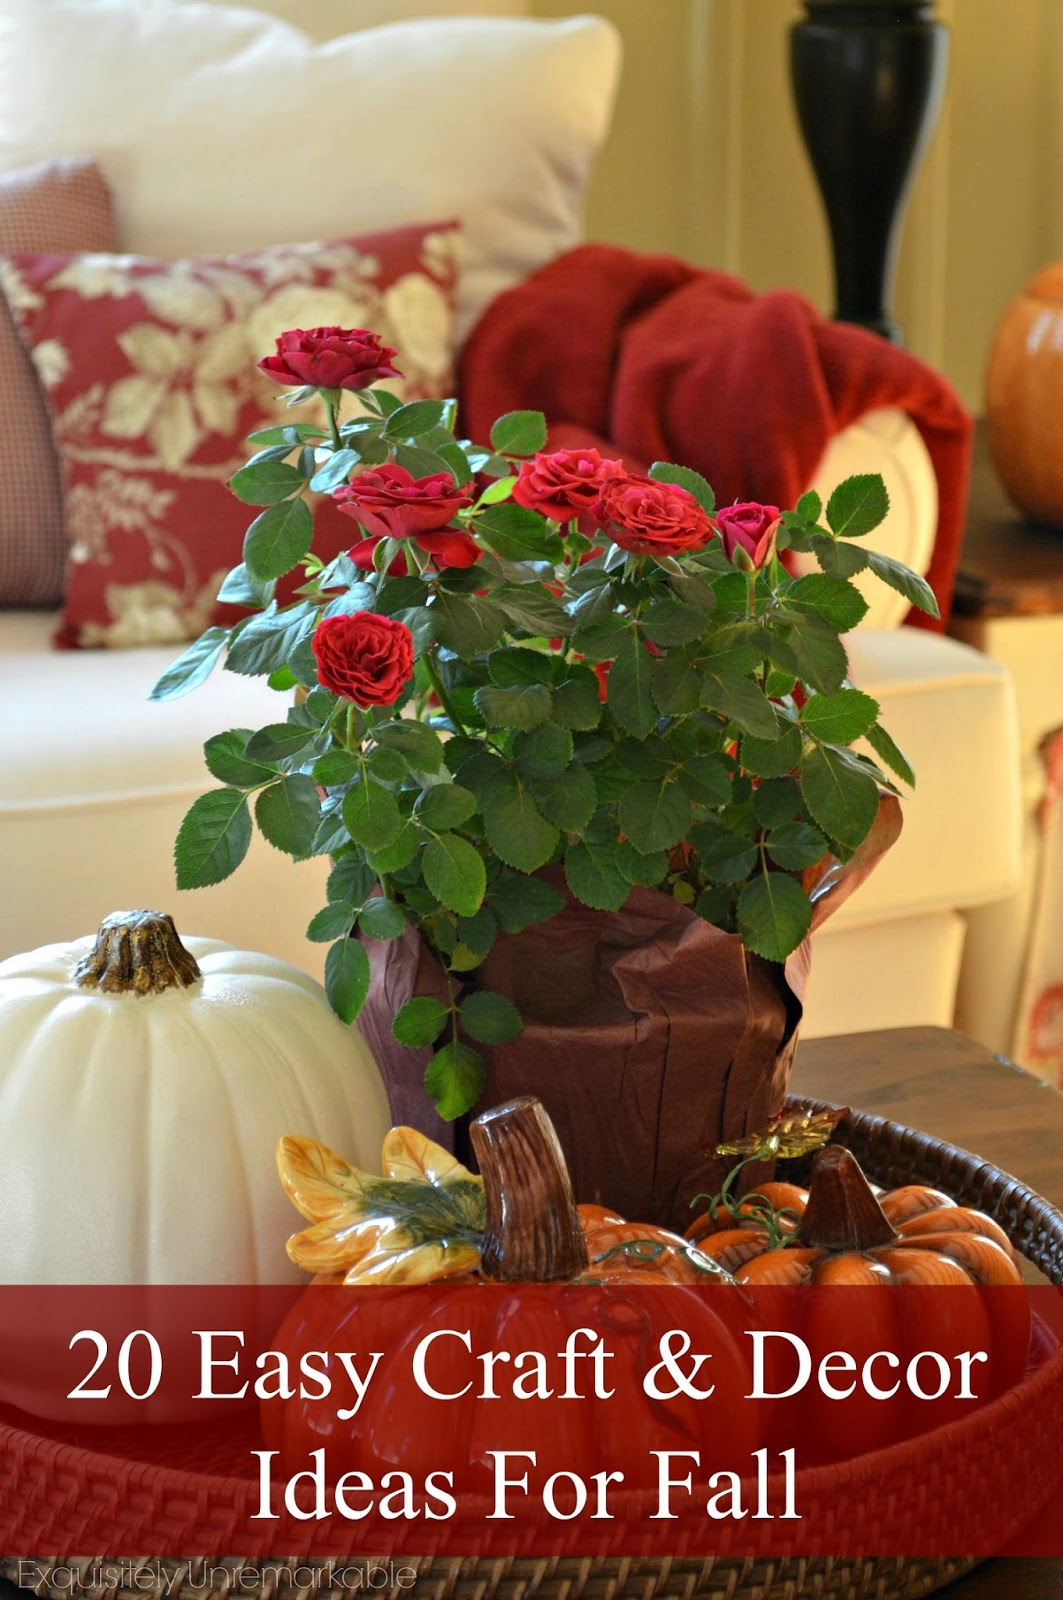 Easy craft and home decor ideas for fall